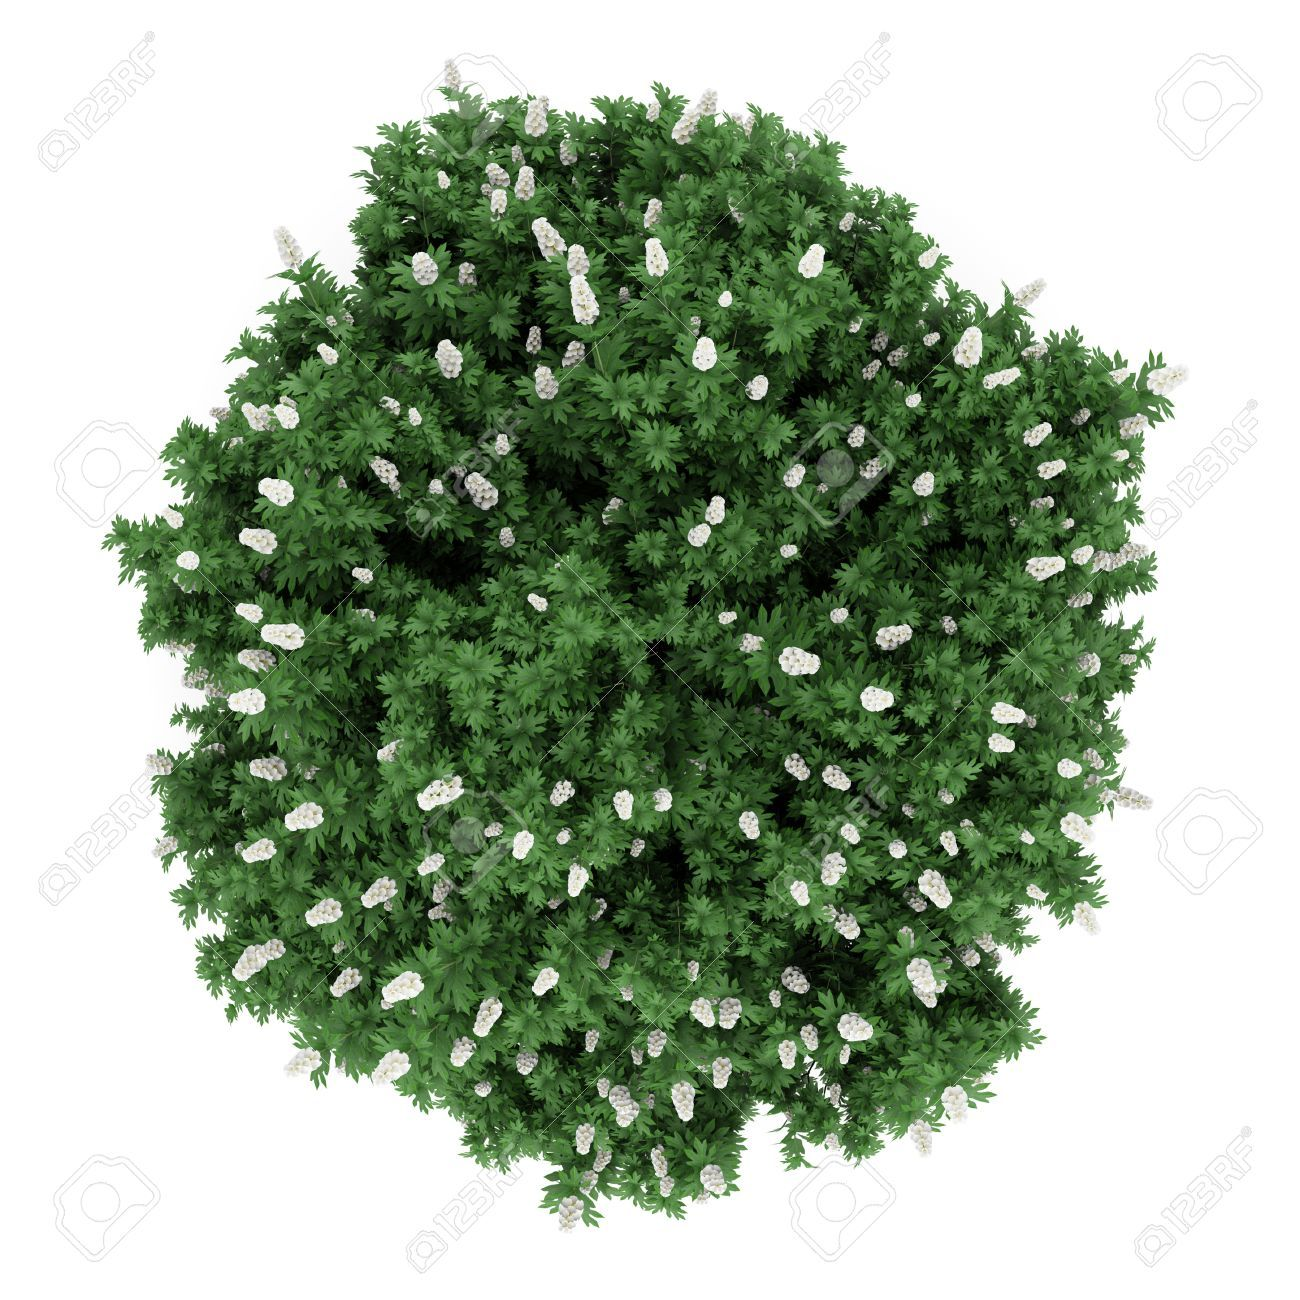 Shrub top view google search ref plant cutouts for Popular small trees